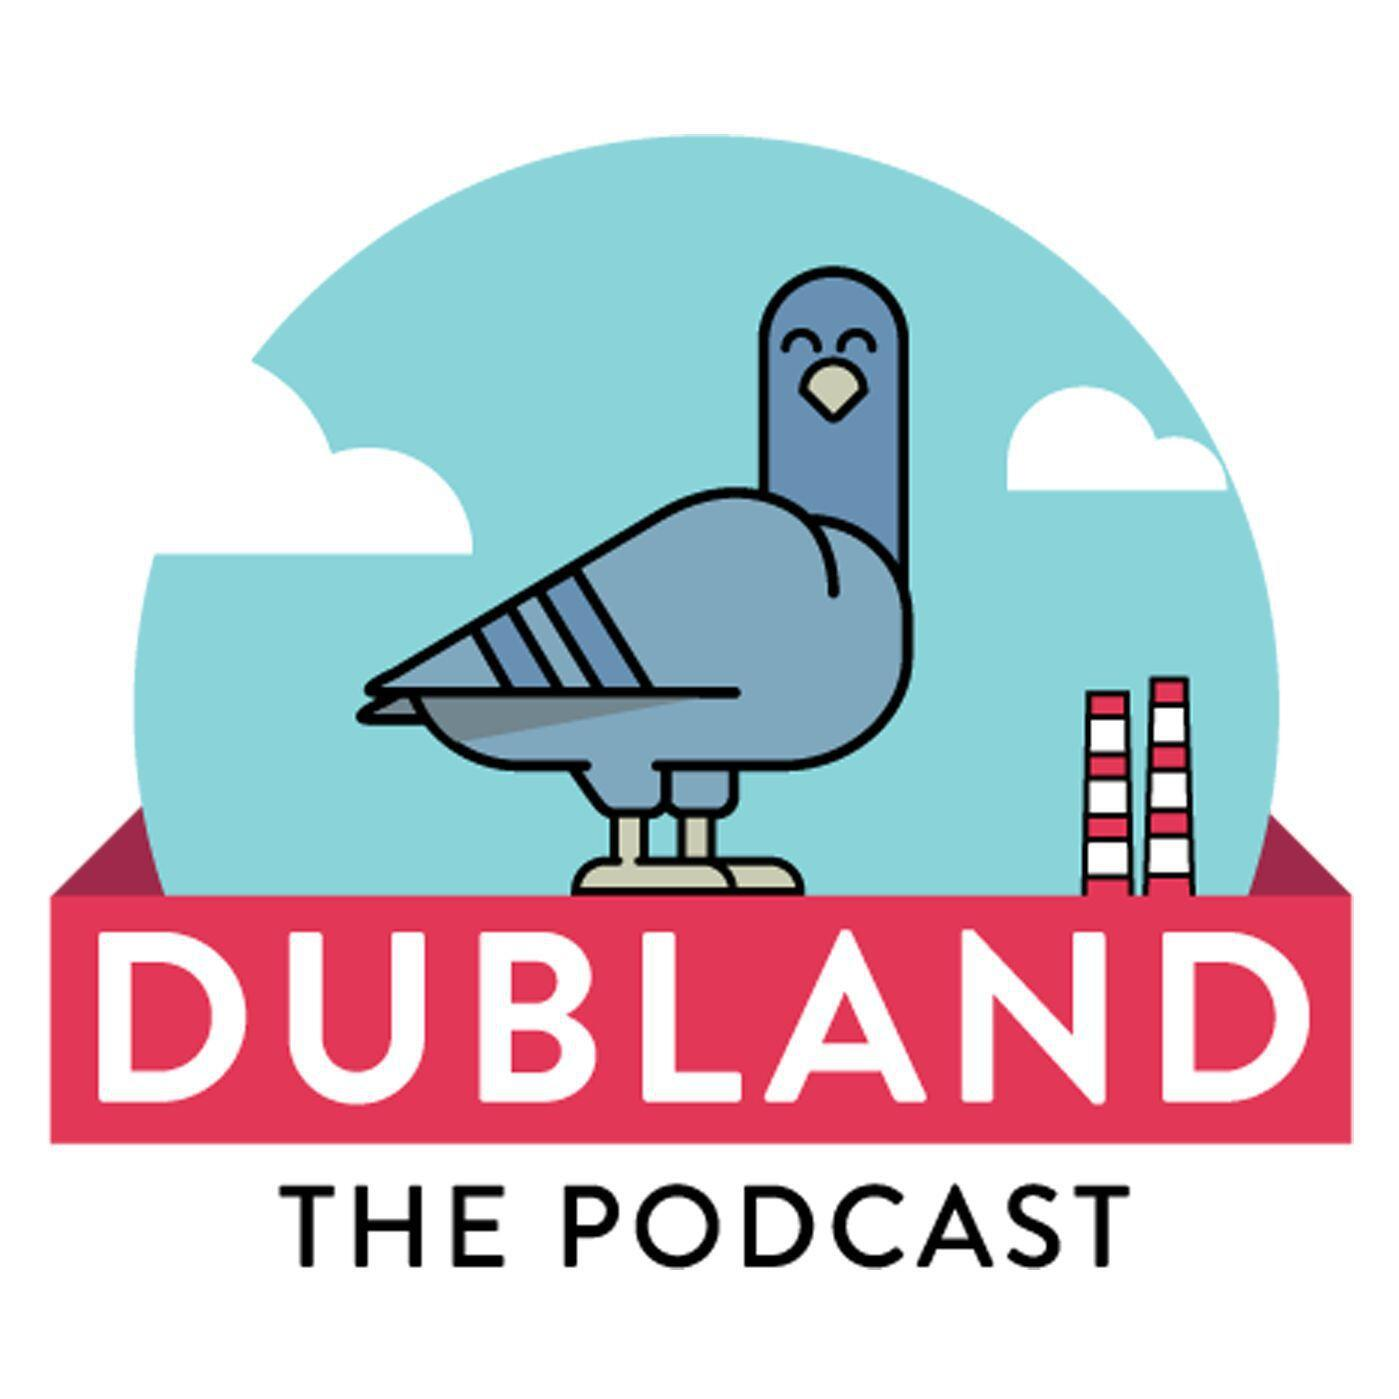 78 DUBLAND THE PODCAST